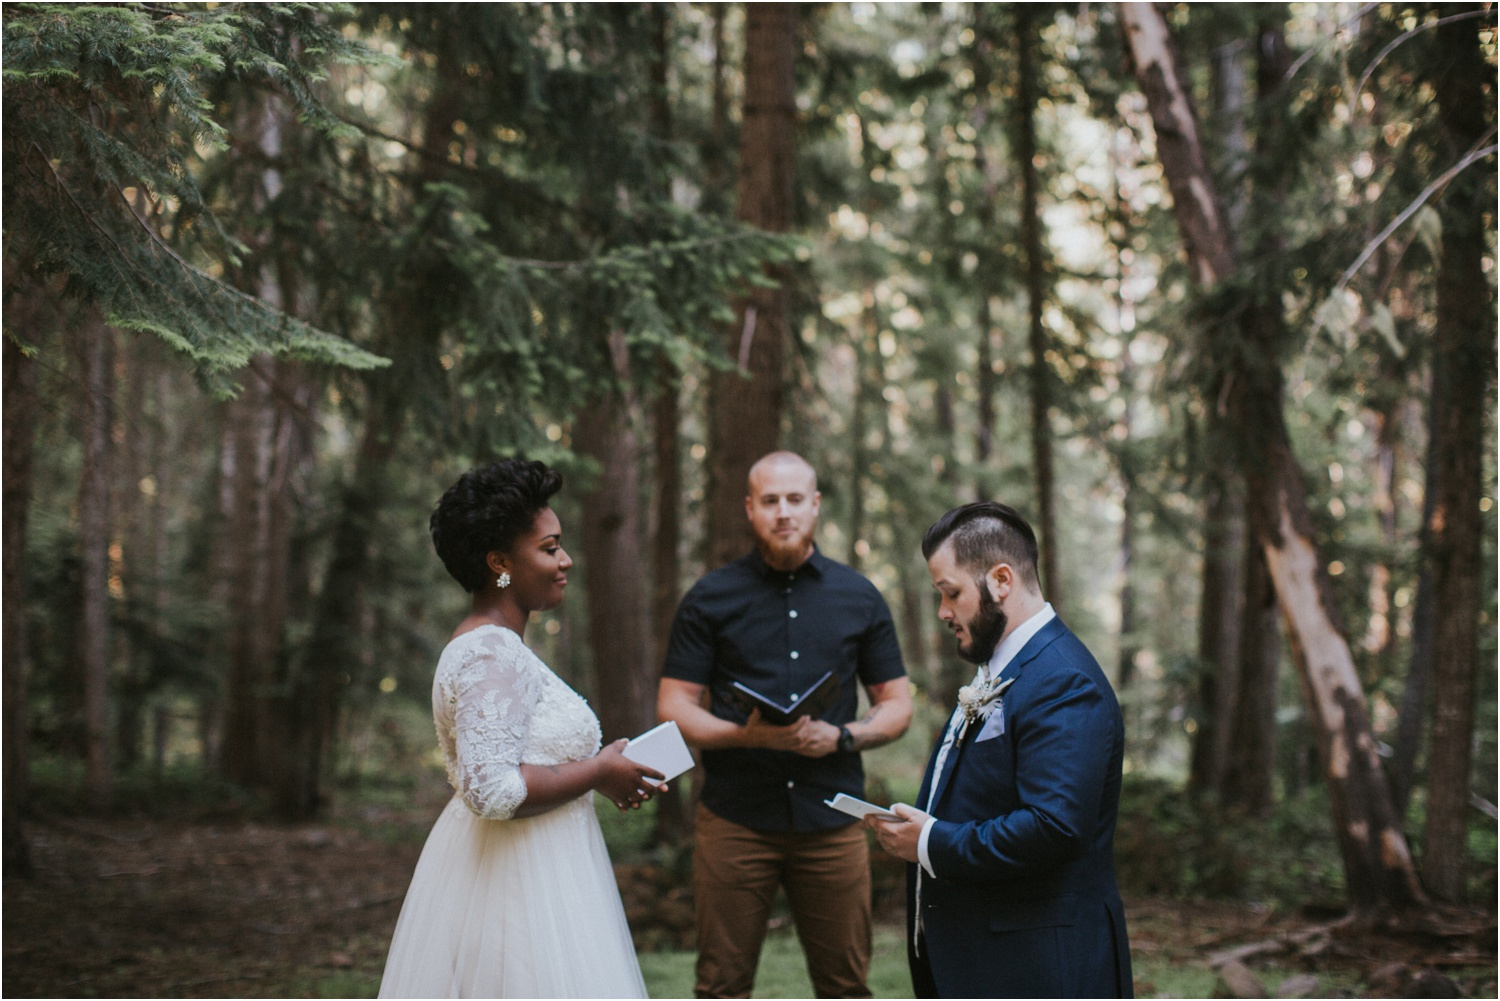 lovestoriesco-amber-phinisee-seattle-mount-rainier-elopement_0043.jpg